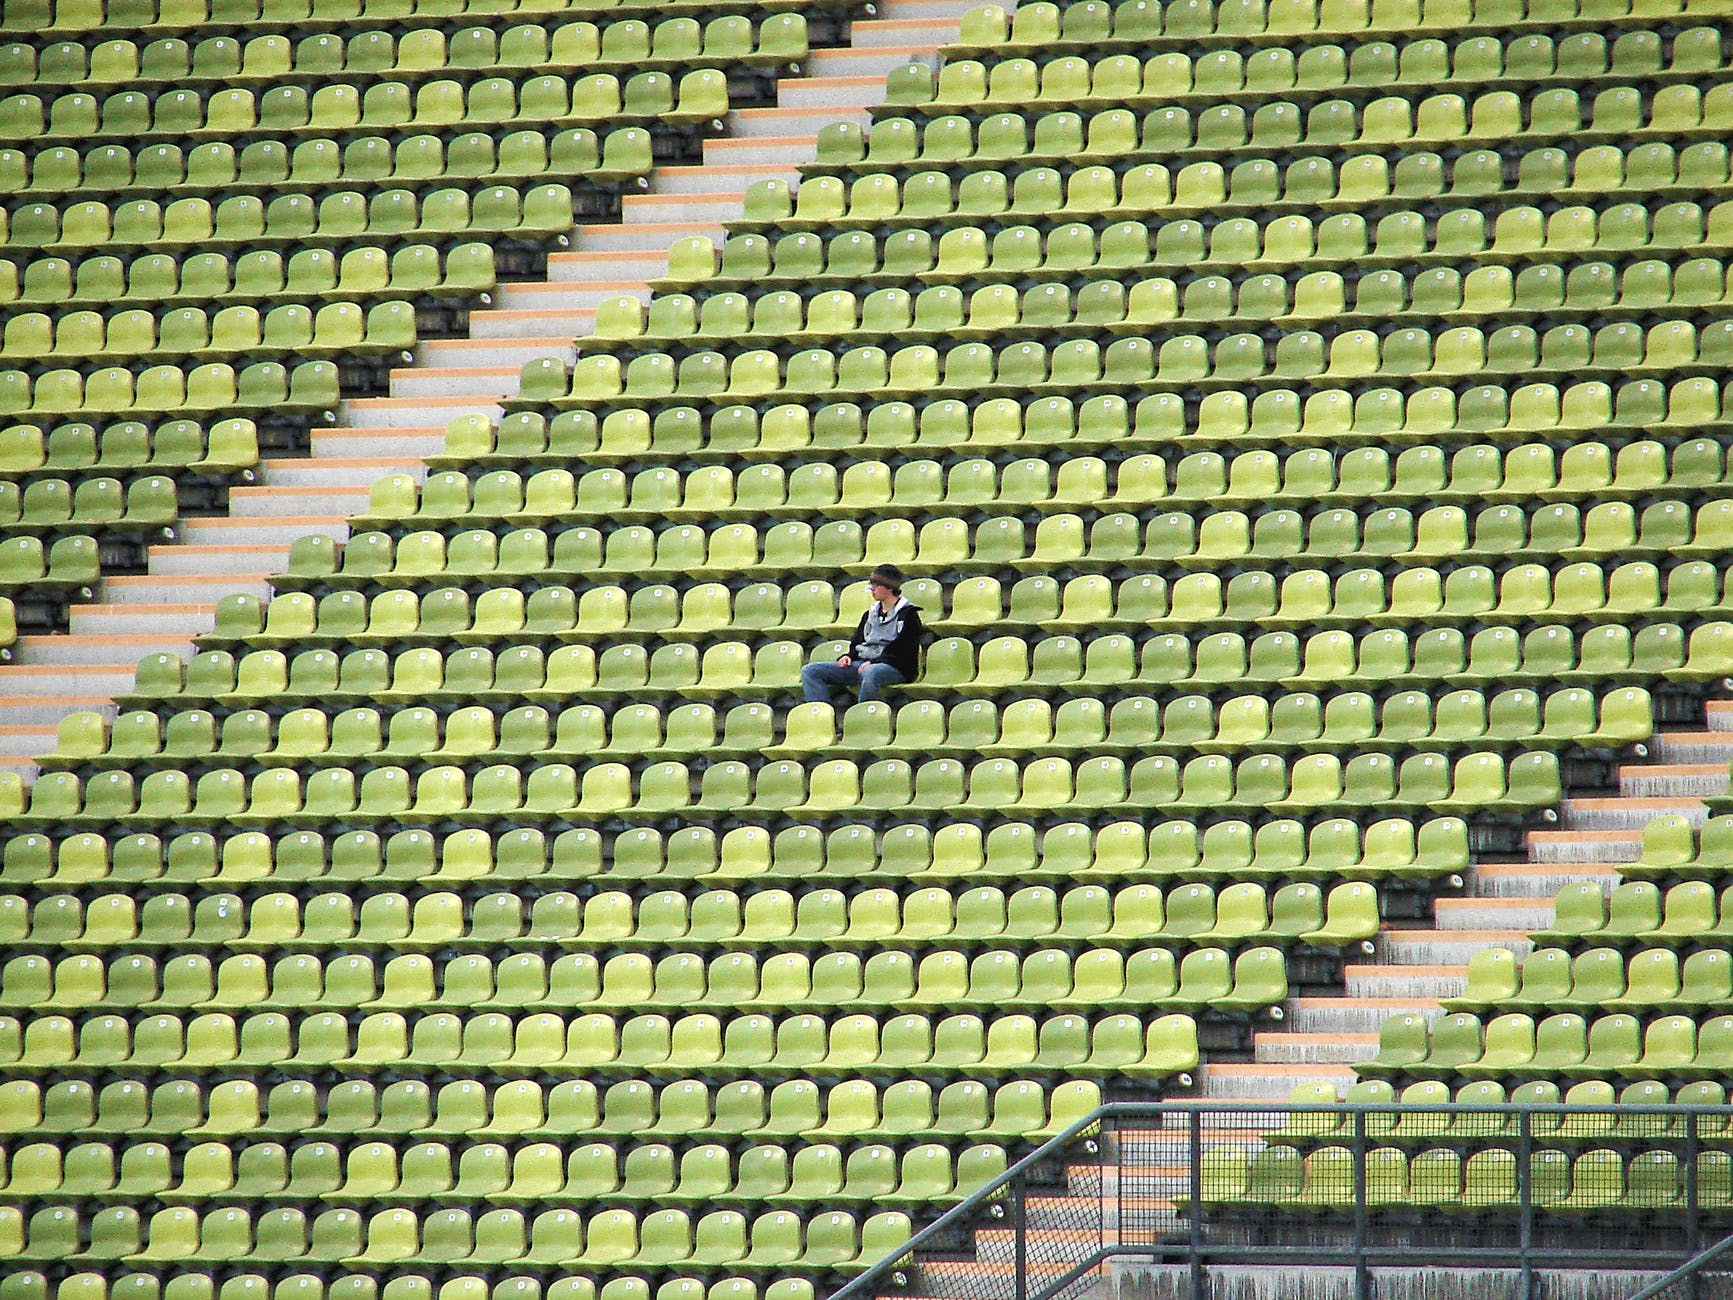 woman in grey shirt sitting on stadium chair